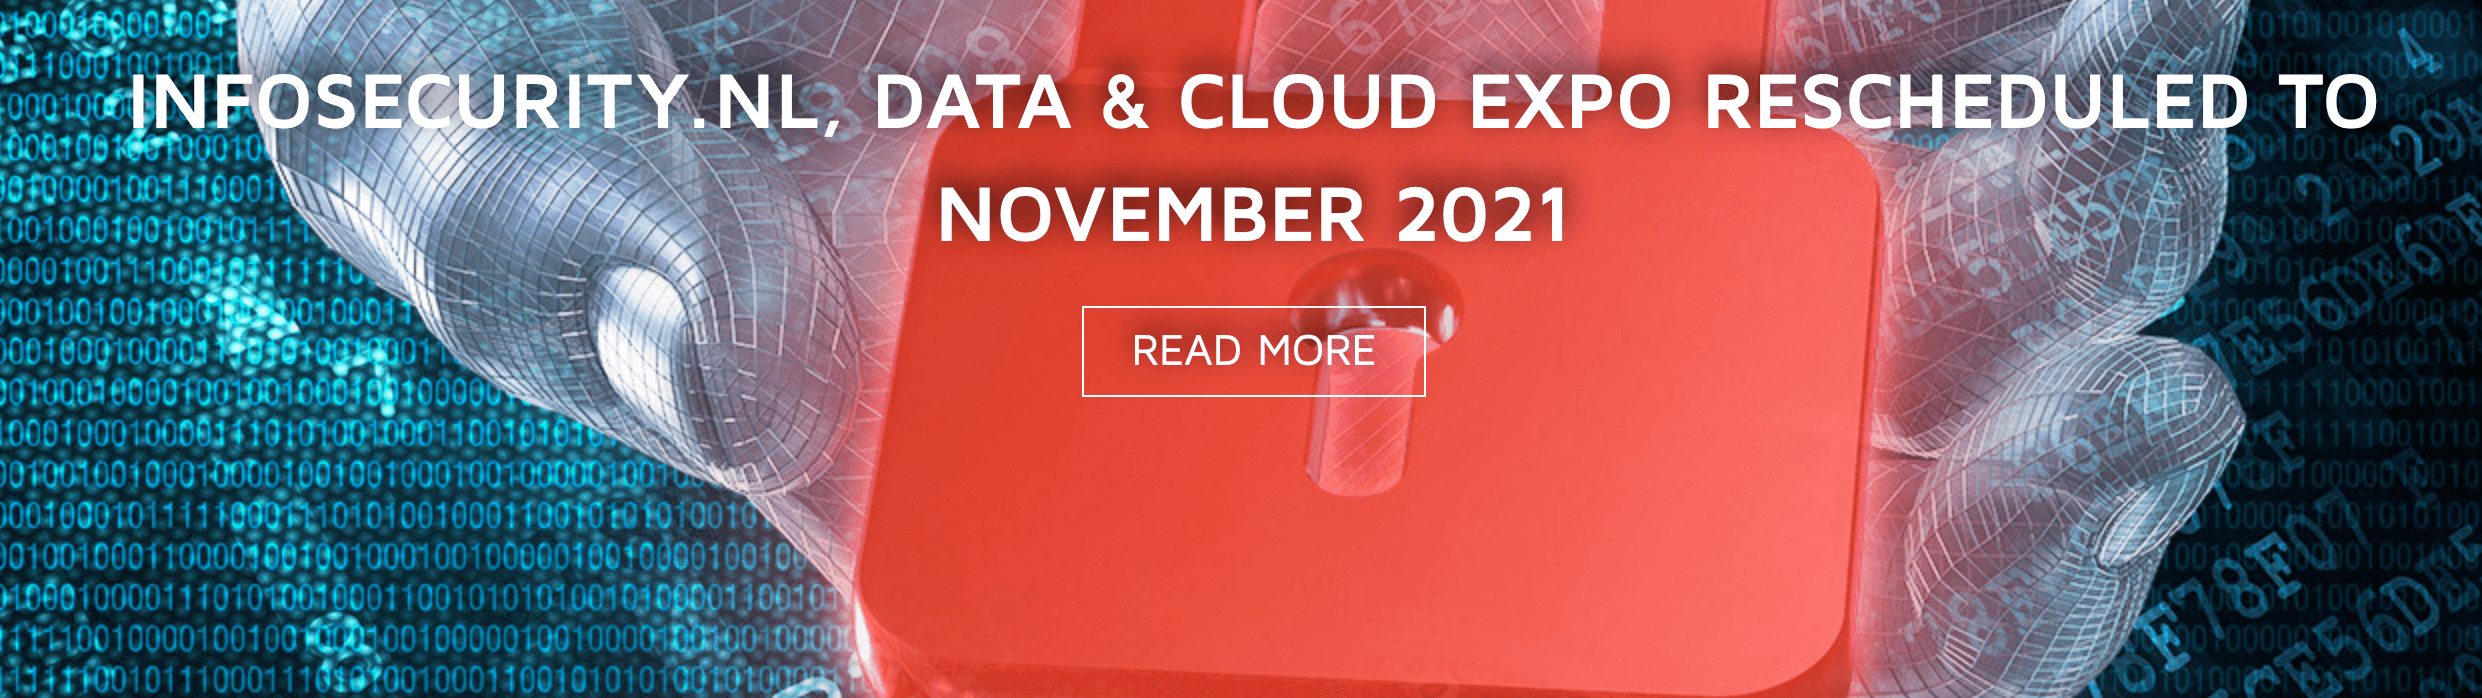 Infosecurity.nl Data & Cloud Expo 2021